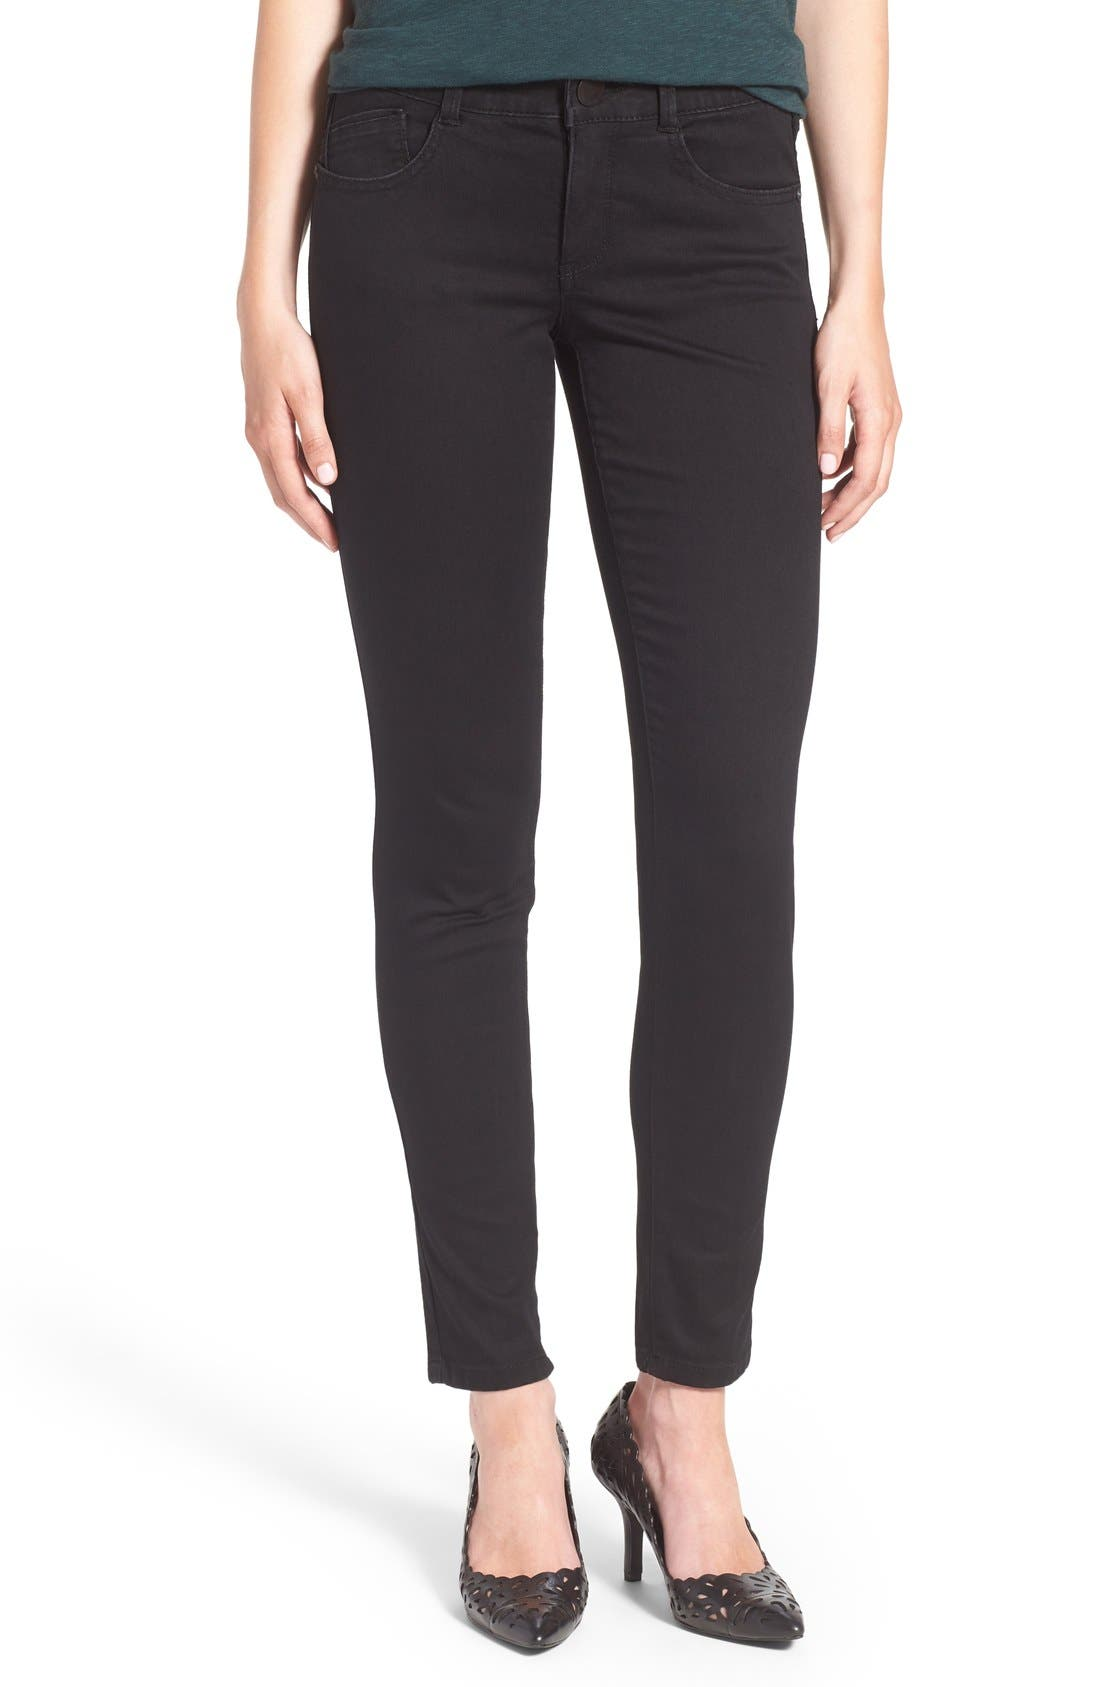 Ab-solution Stretch Skinny Jeans,                         Main,                         color, Black